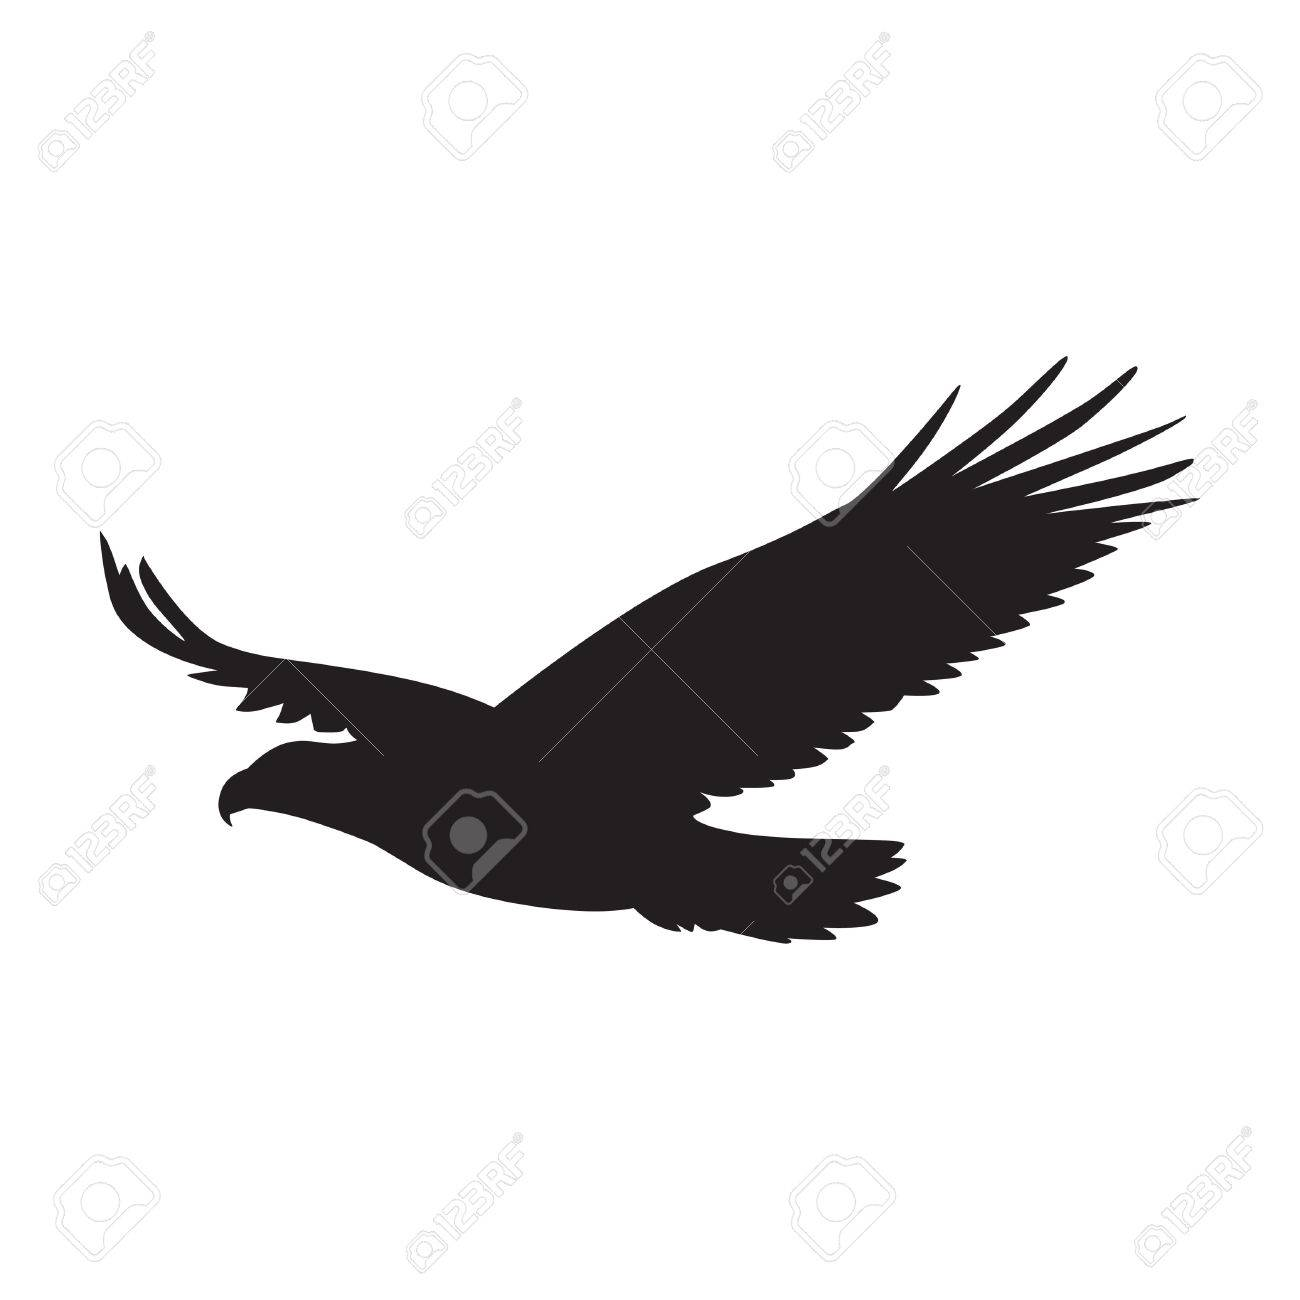 Vector silhouette of the Bird of Prey in flight with wings spread - 59461100